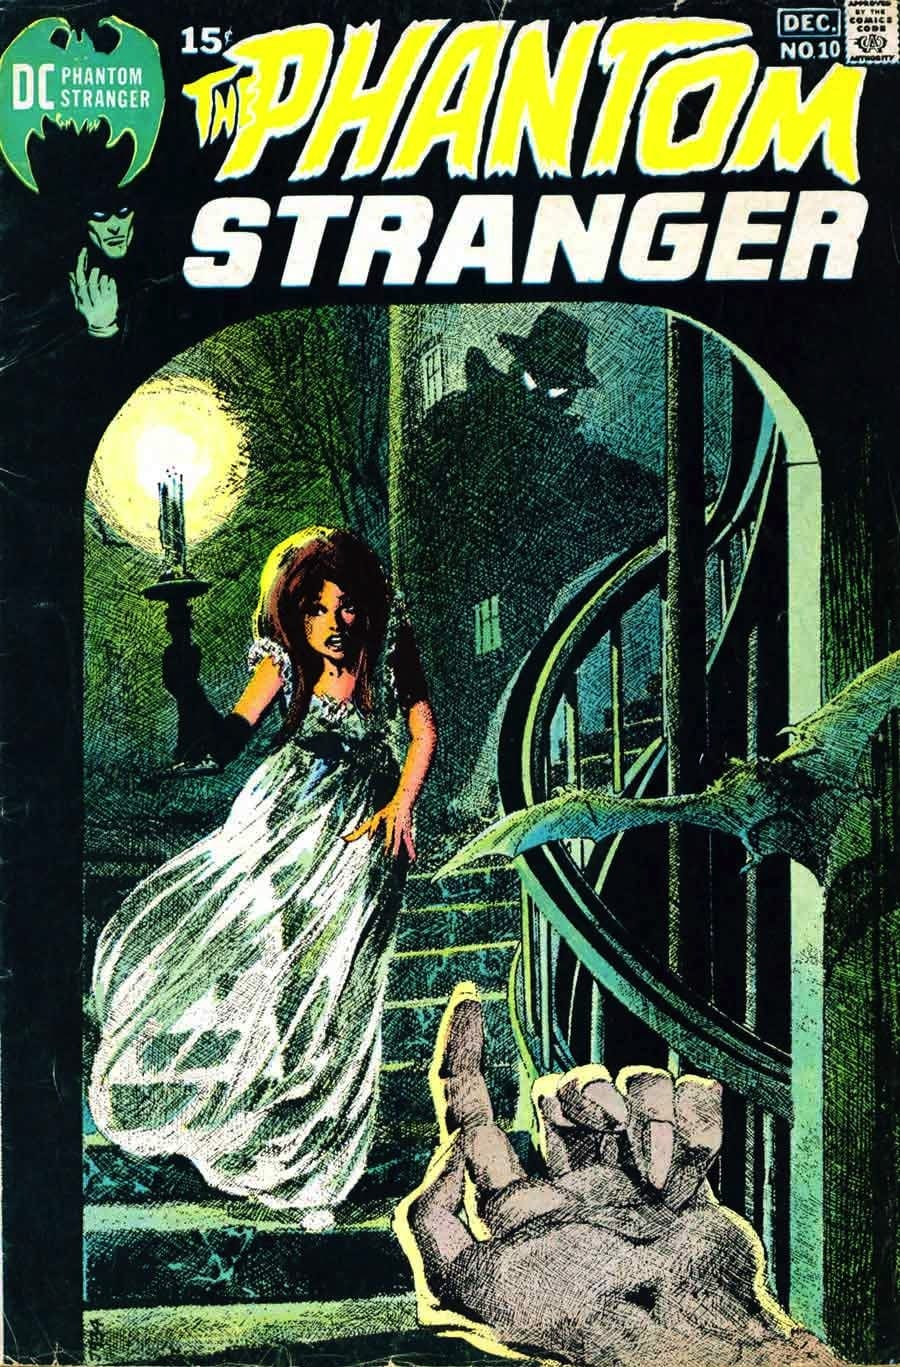 Phantom Stranger v2 #10 - 1970s dc horror comic book cover art by Neal Adams